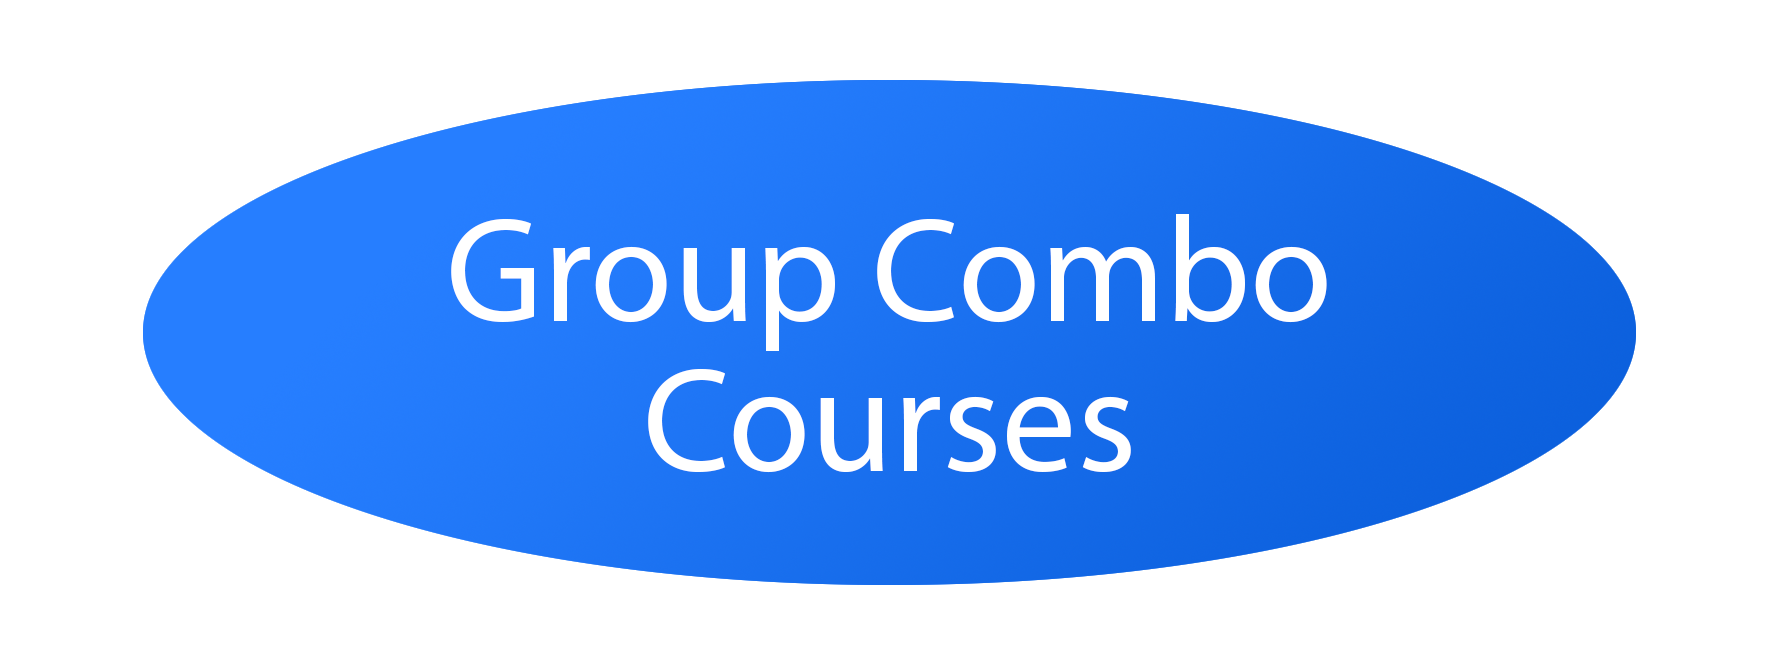 Group Combo Courses Button.png